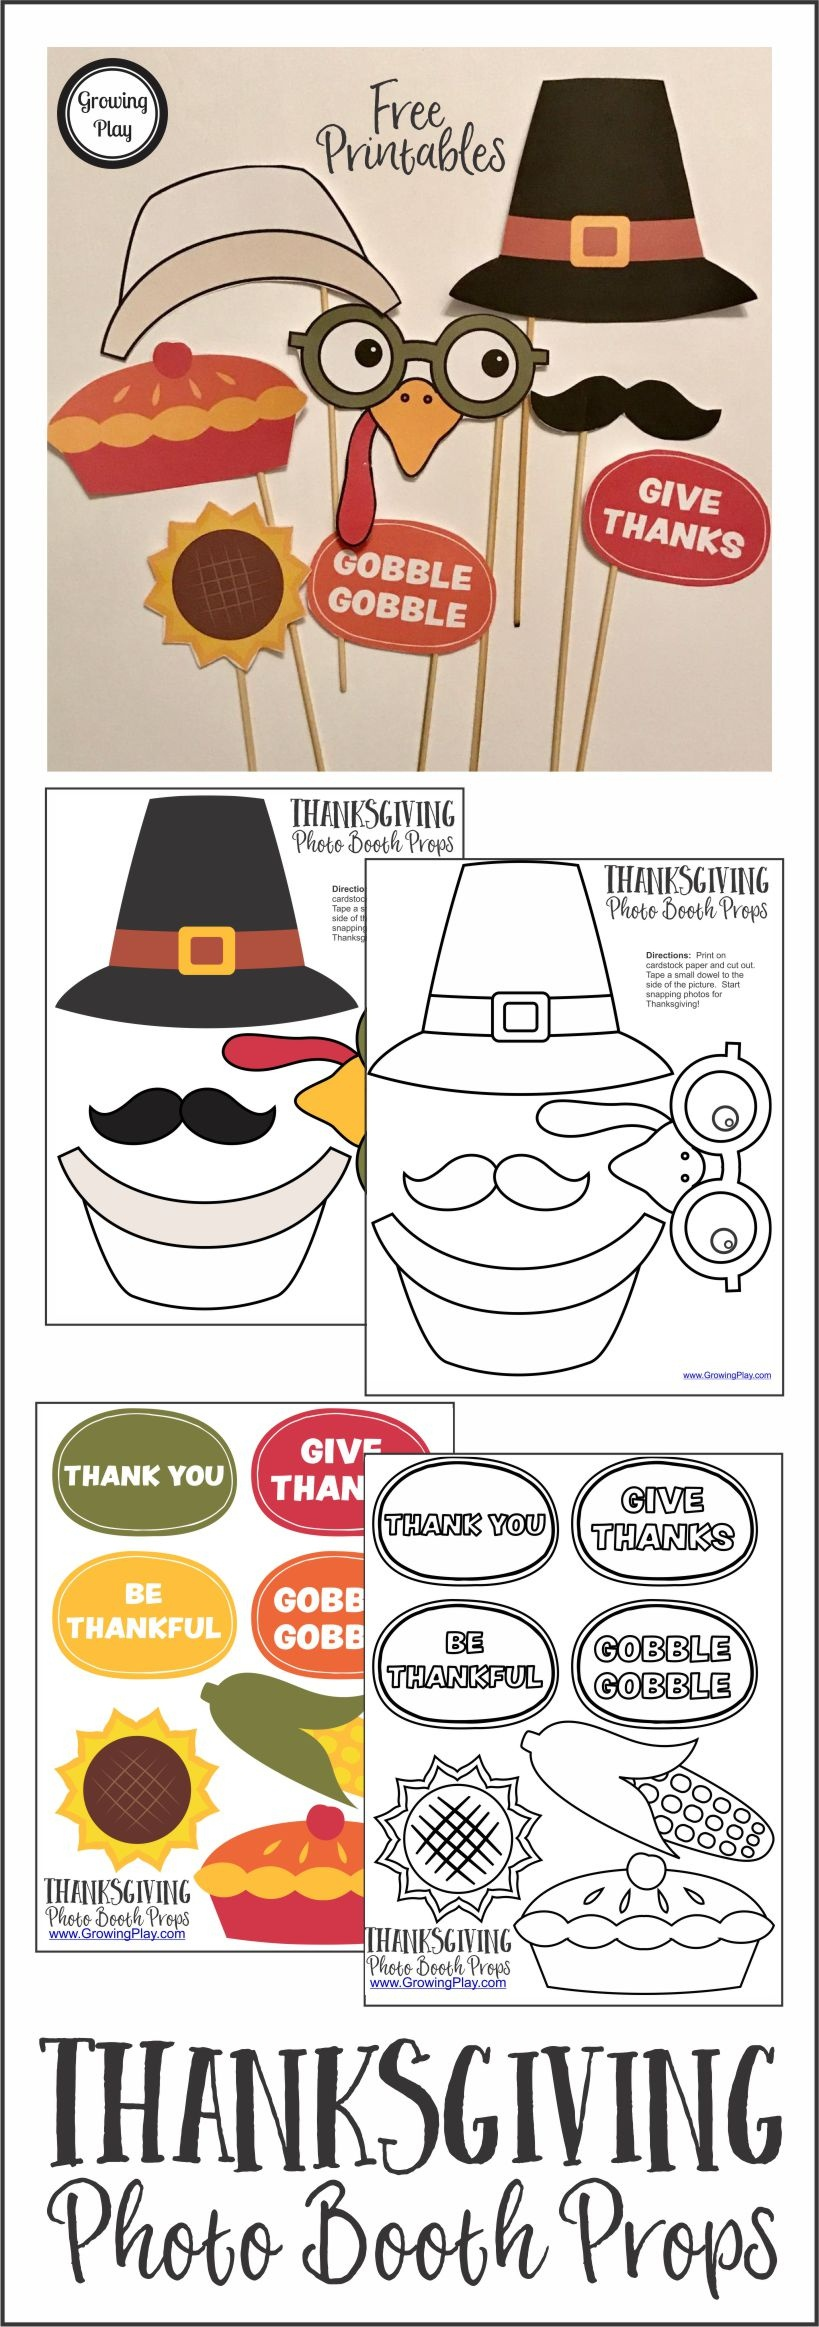 Thanksgiving Photo Booth Props - Growing Play - Free Printable Thanksgiving Photo Props